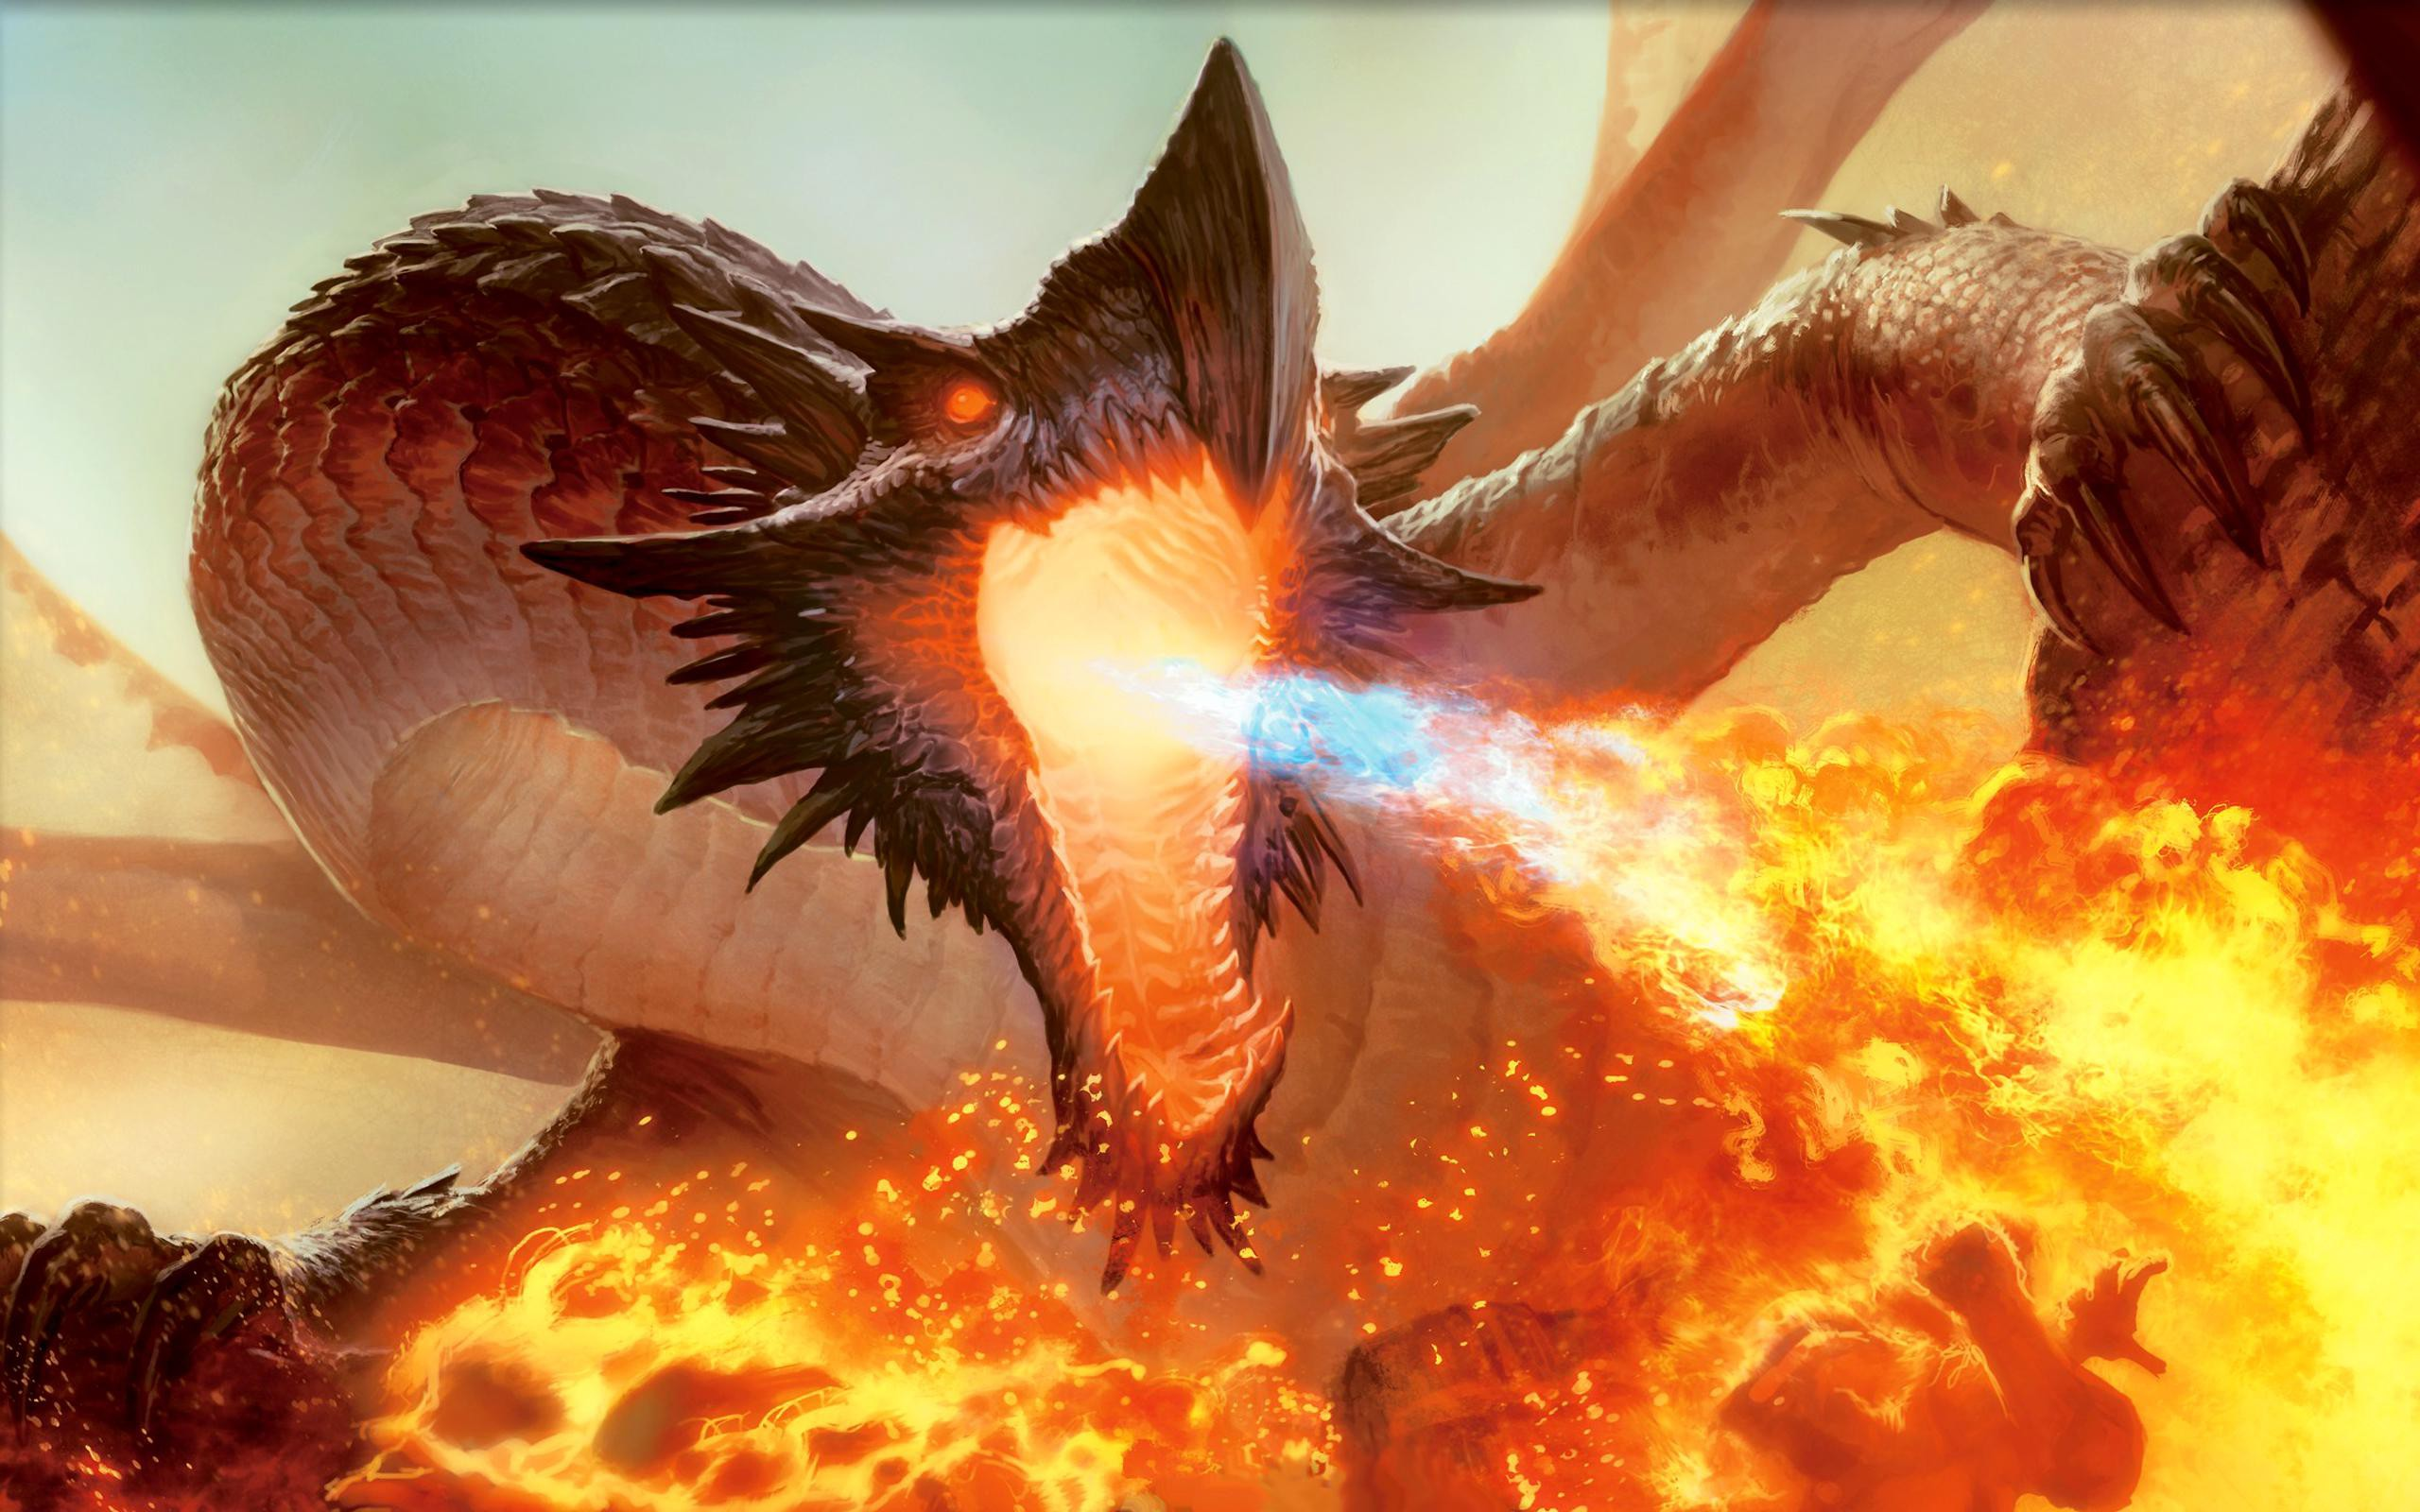 Fire spitting dragon